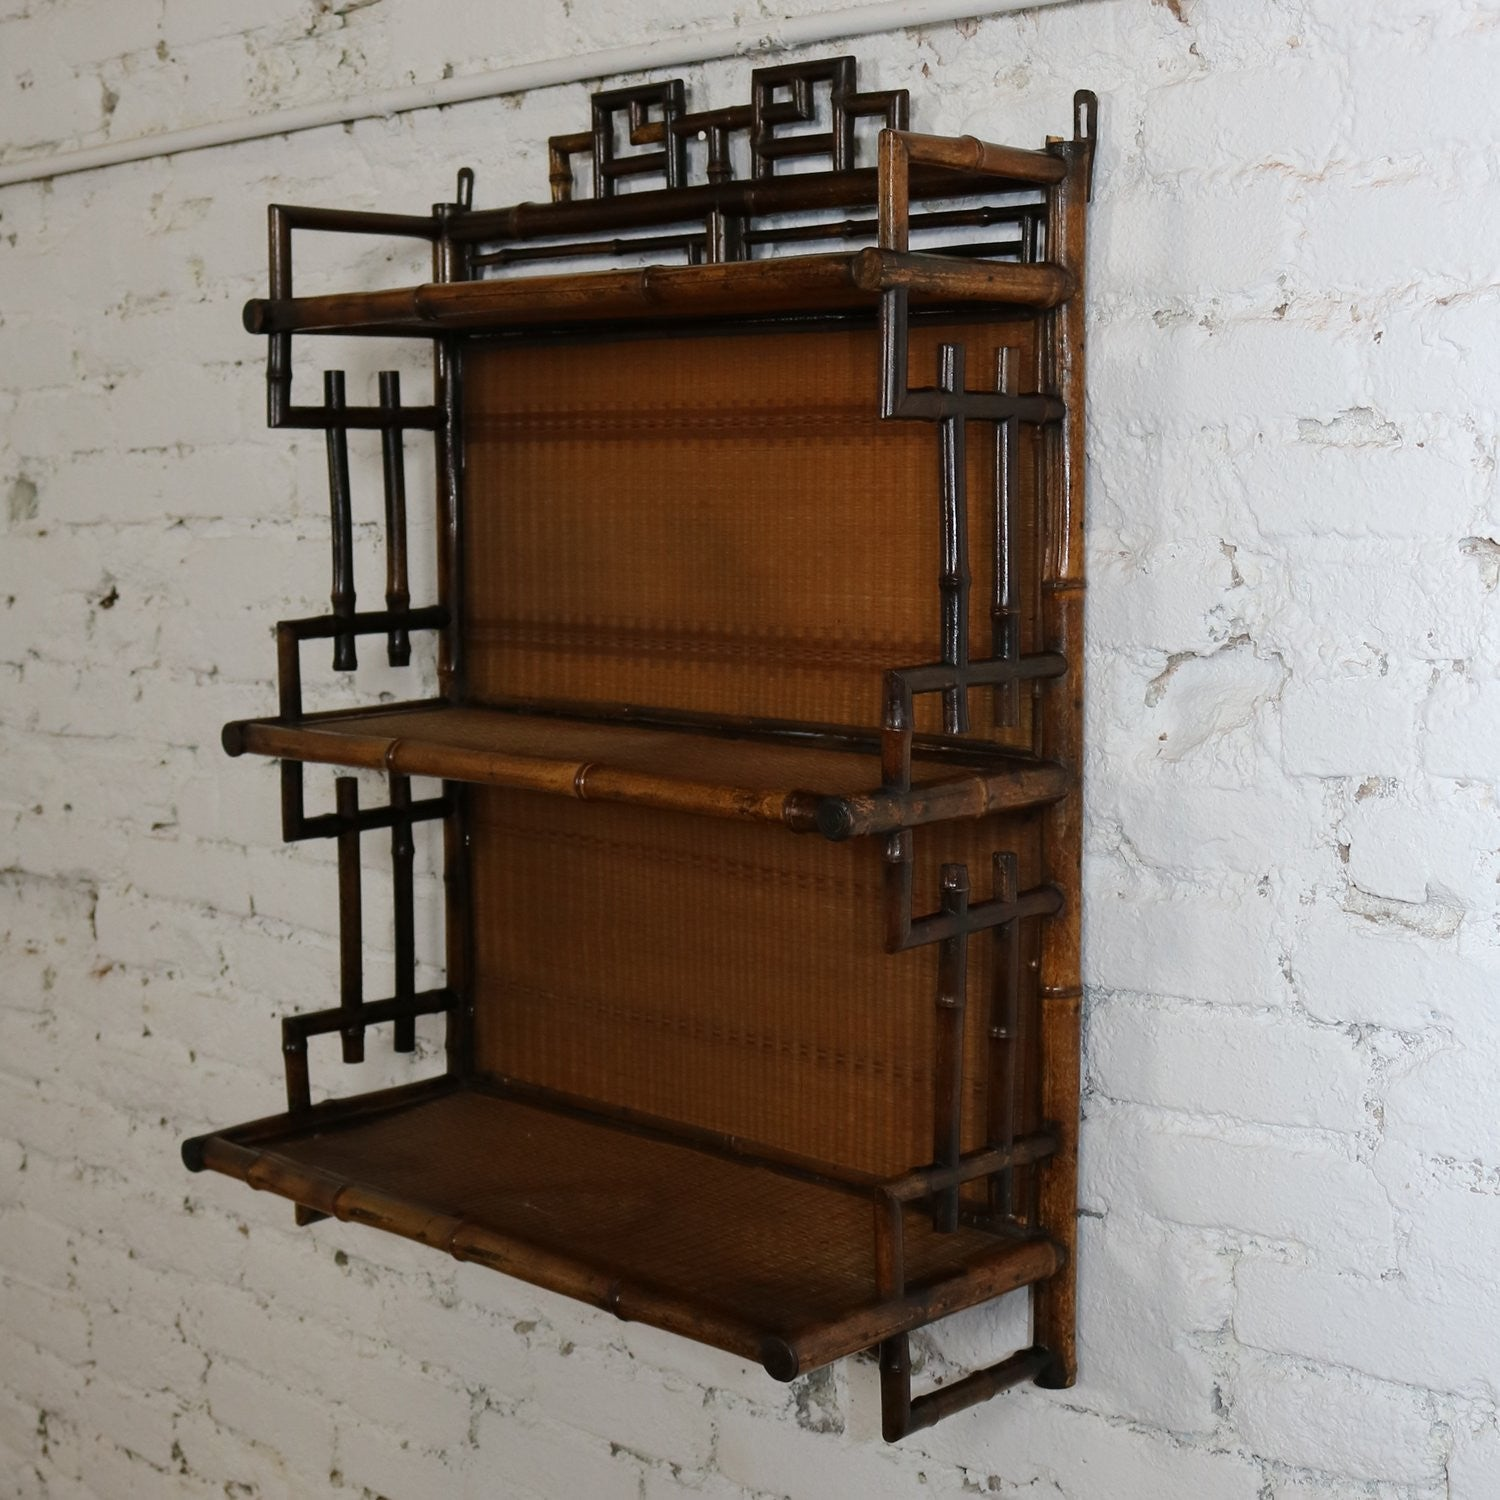 Bamboo Wall Shelf – Total Prop Productions Inc.